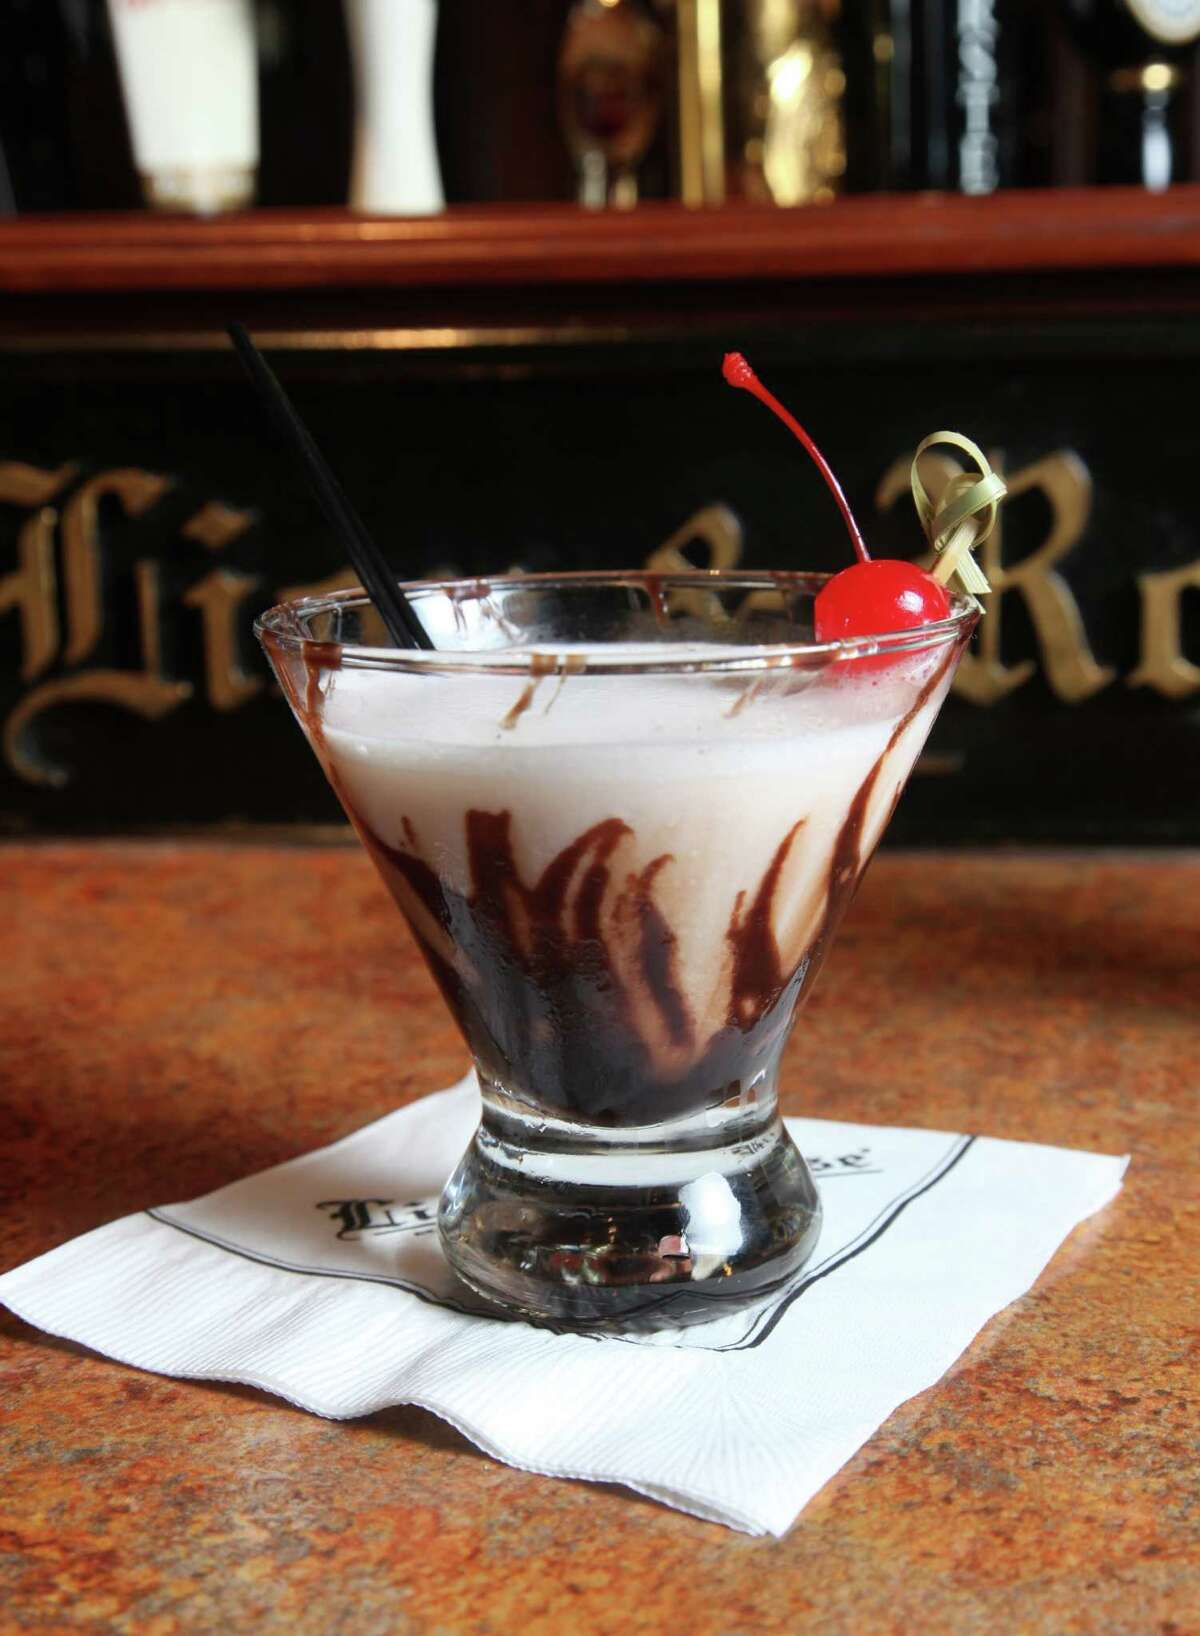 The chocolatini is one of many bar offerings at Lion & Rose.